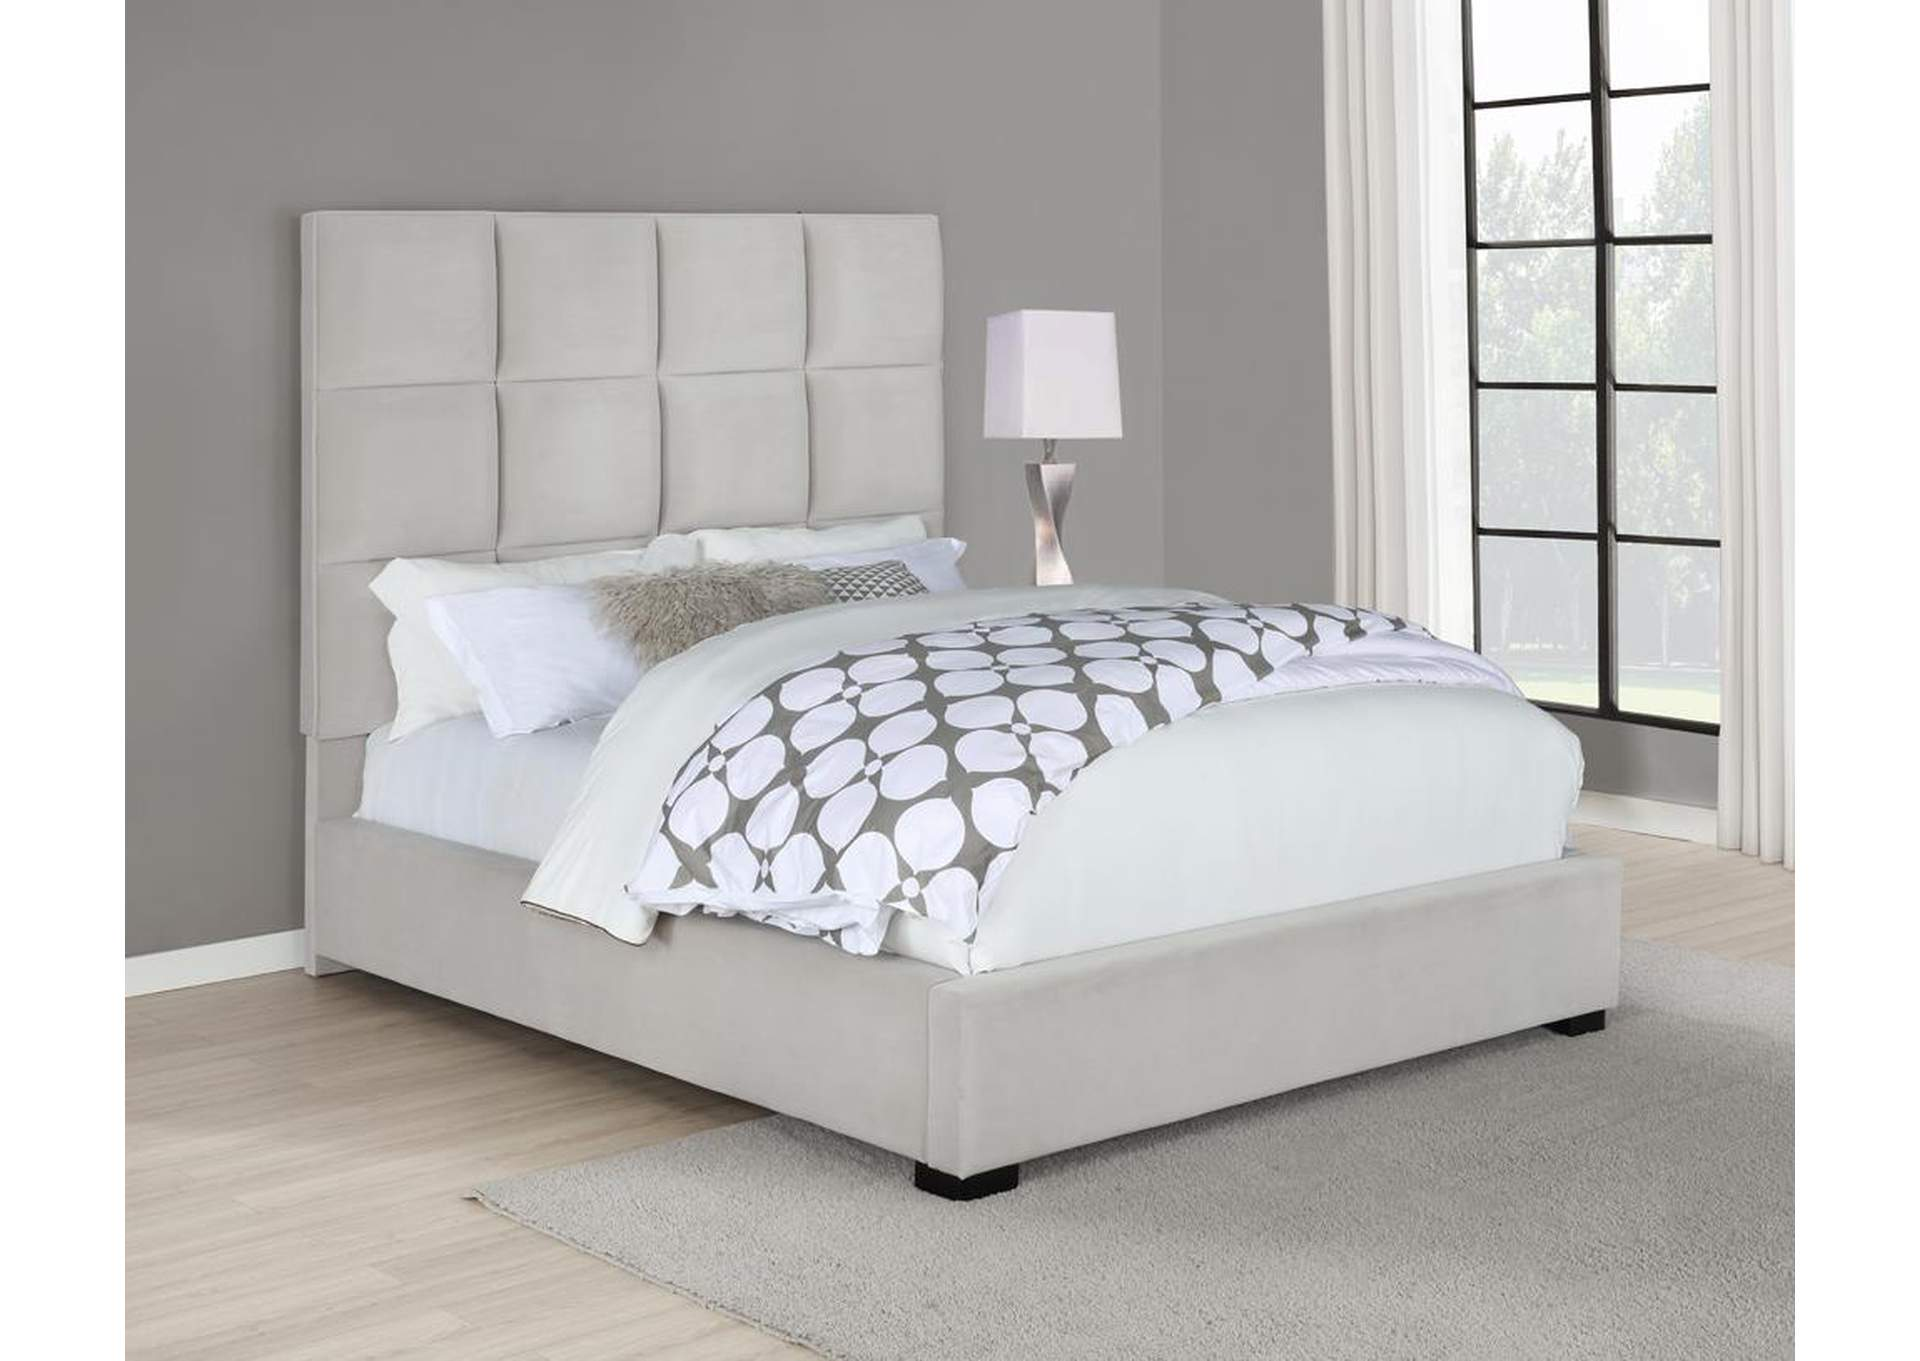 Beige Upholstered Queen Bed,Coaster Furniture